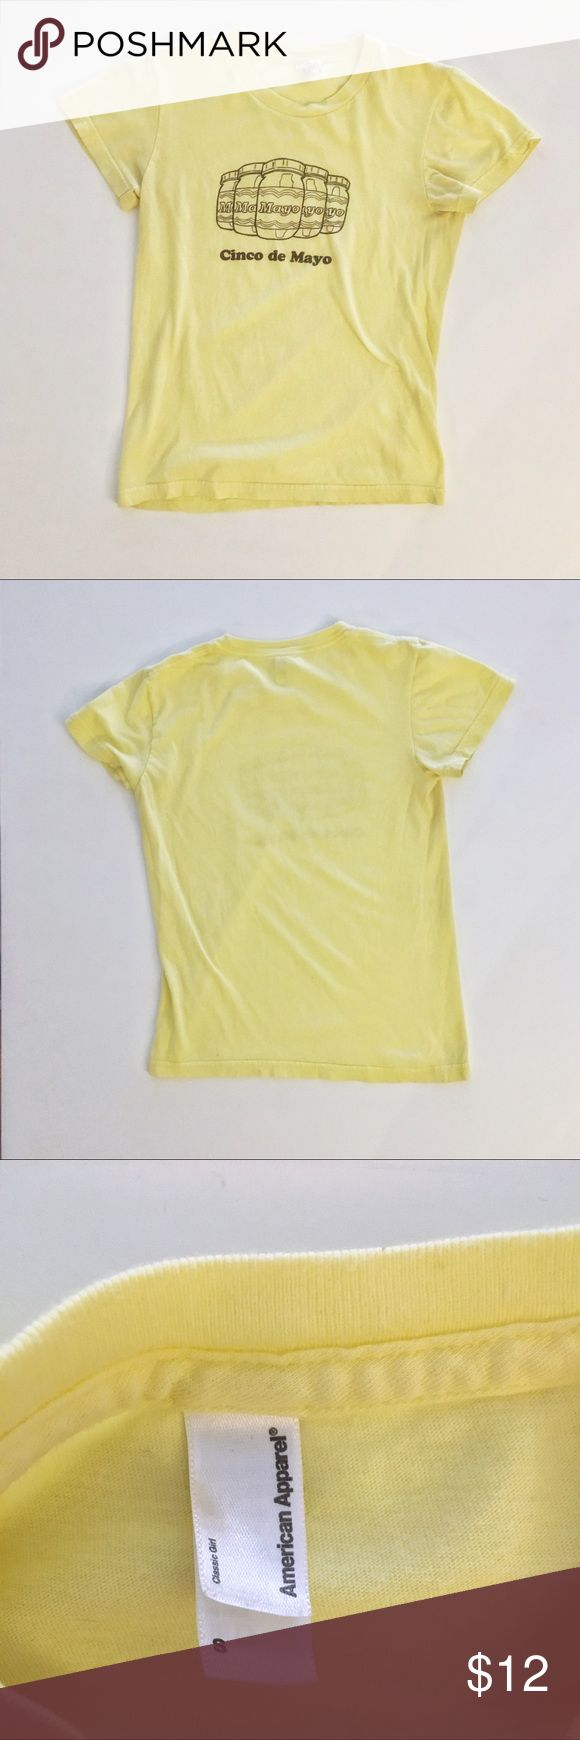 "American Apparel ""Cinco de Mayo"" T-Shirt - Size S American Apparel Women's Yellow ""Cinco de Mayo"" T-Shirt - Size S - in excellent condition American Apparel Tops Tees - Short Sleeve"